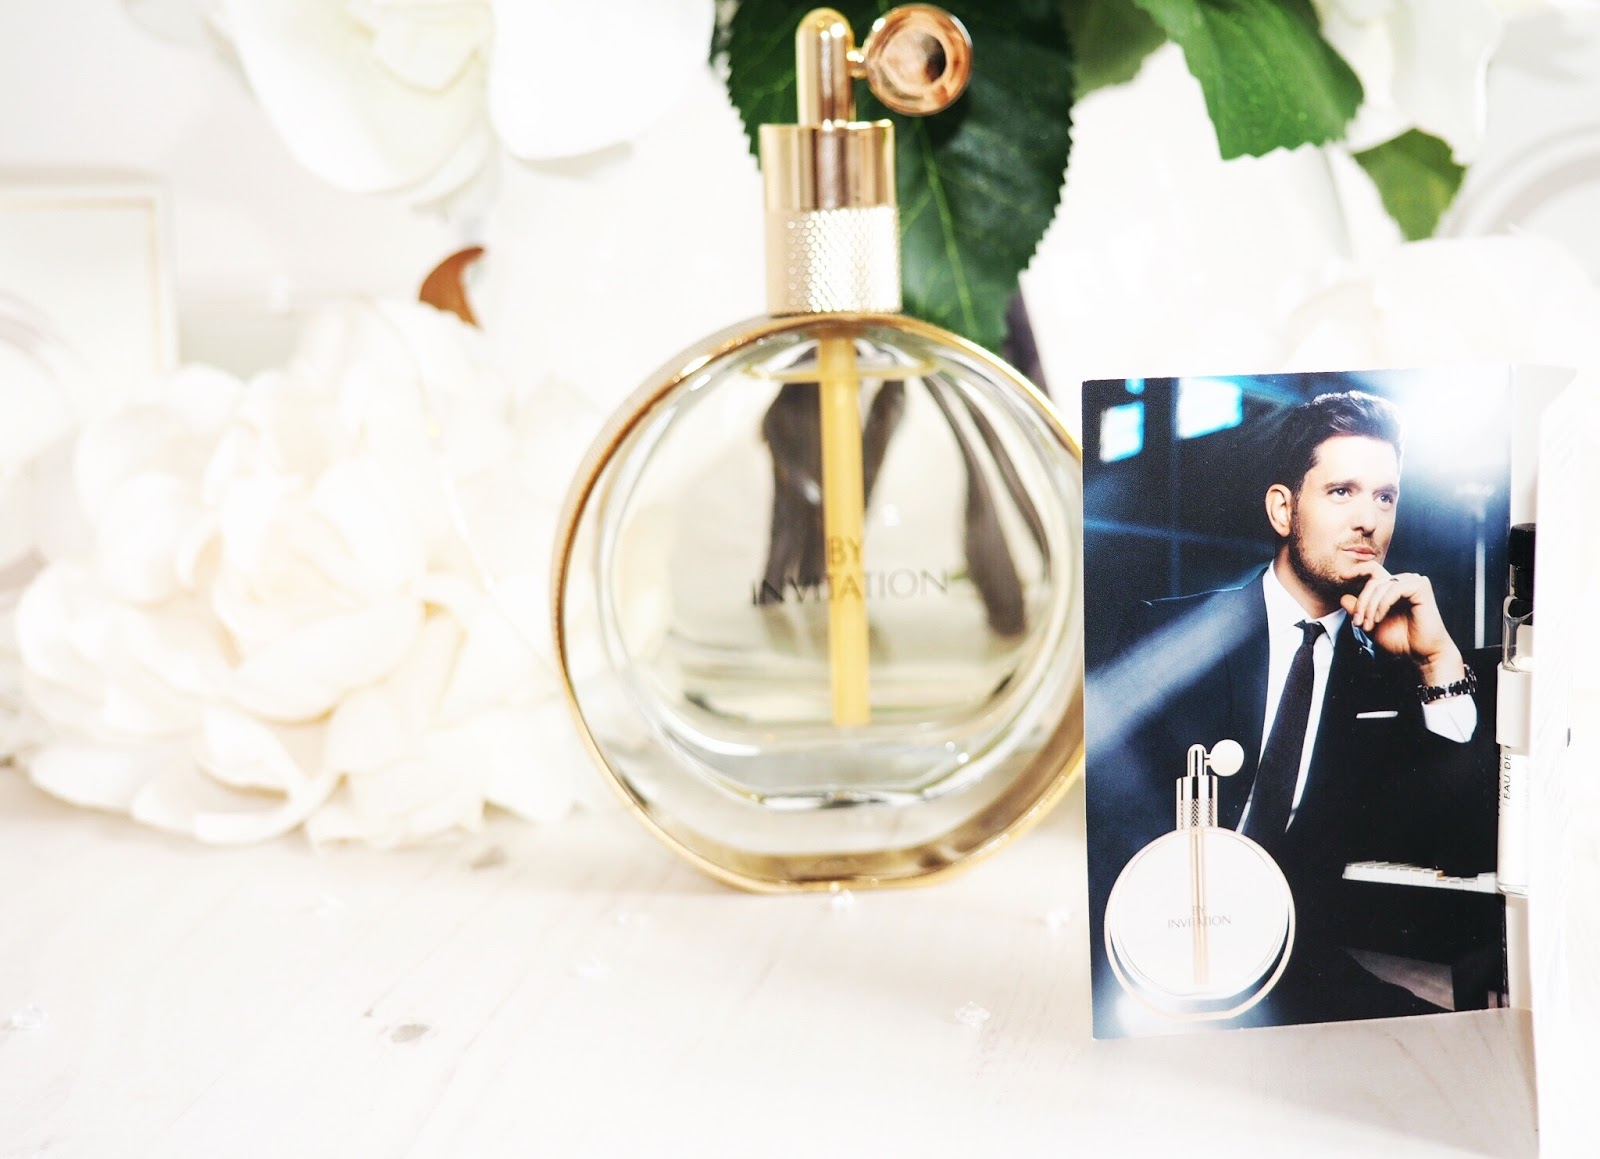 Most importantly for me and because this is a celebrity scent this is a perfume that exceeds expectations and stands out from the crowd